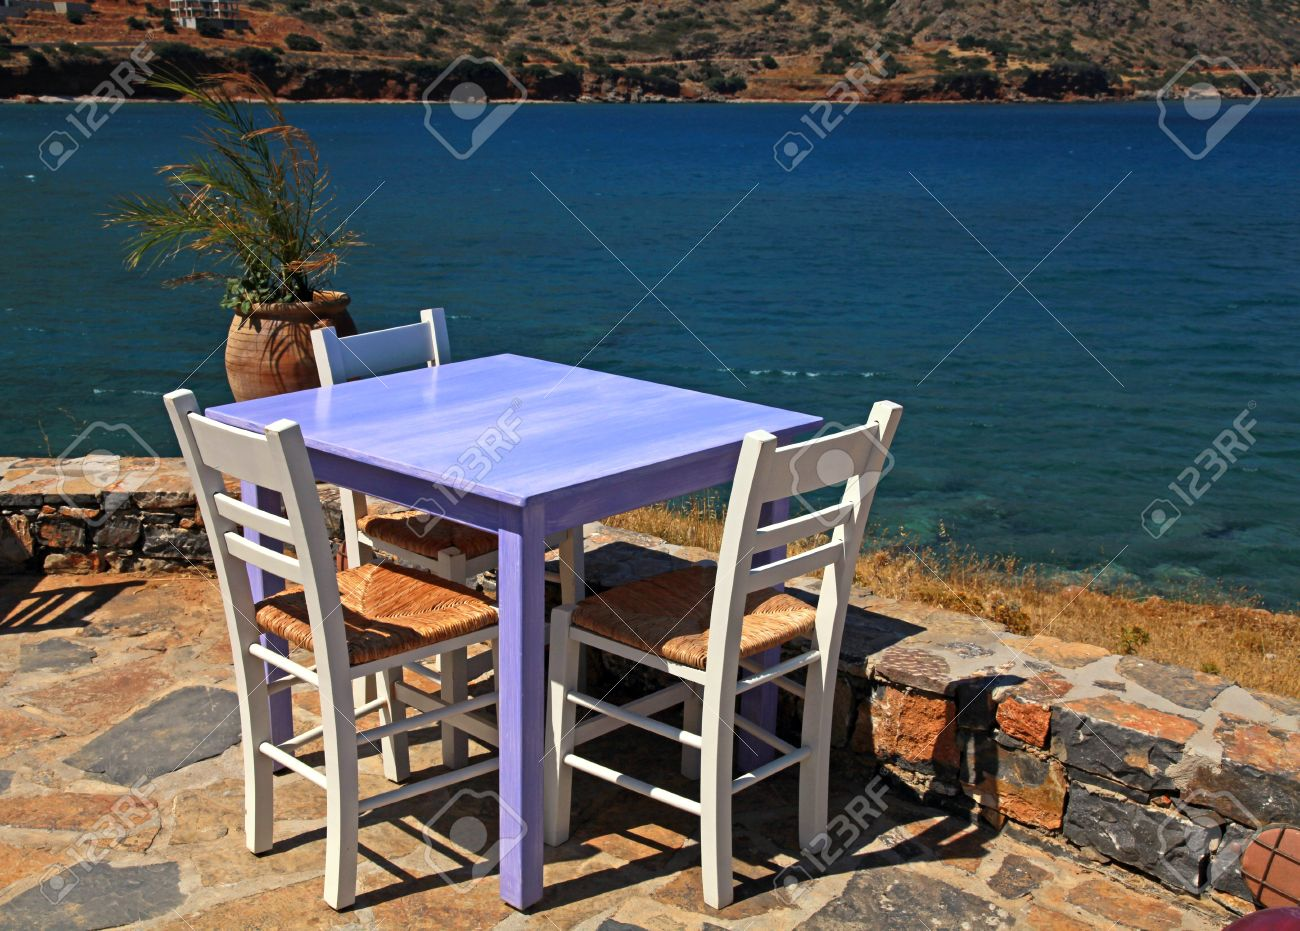 Superior Outdoor Restaurant   Traditional Greek Tavern With Lilac Table And White  Chairs Overlooking Mediterranean Sea (